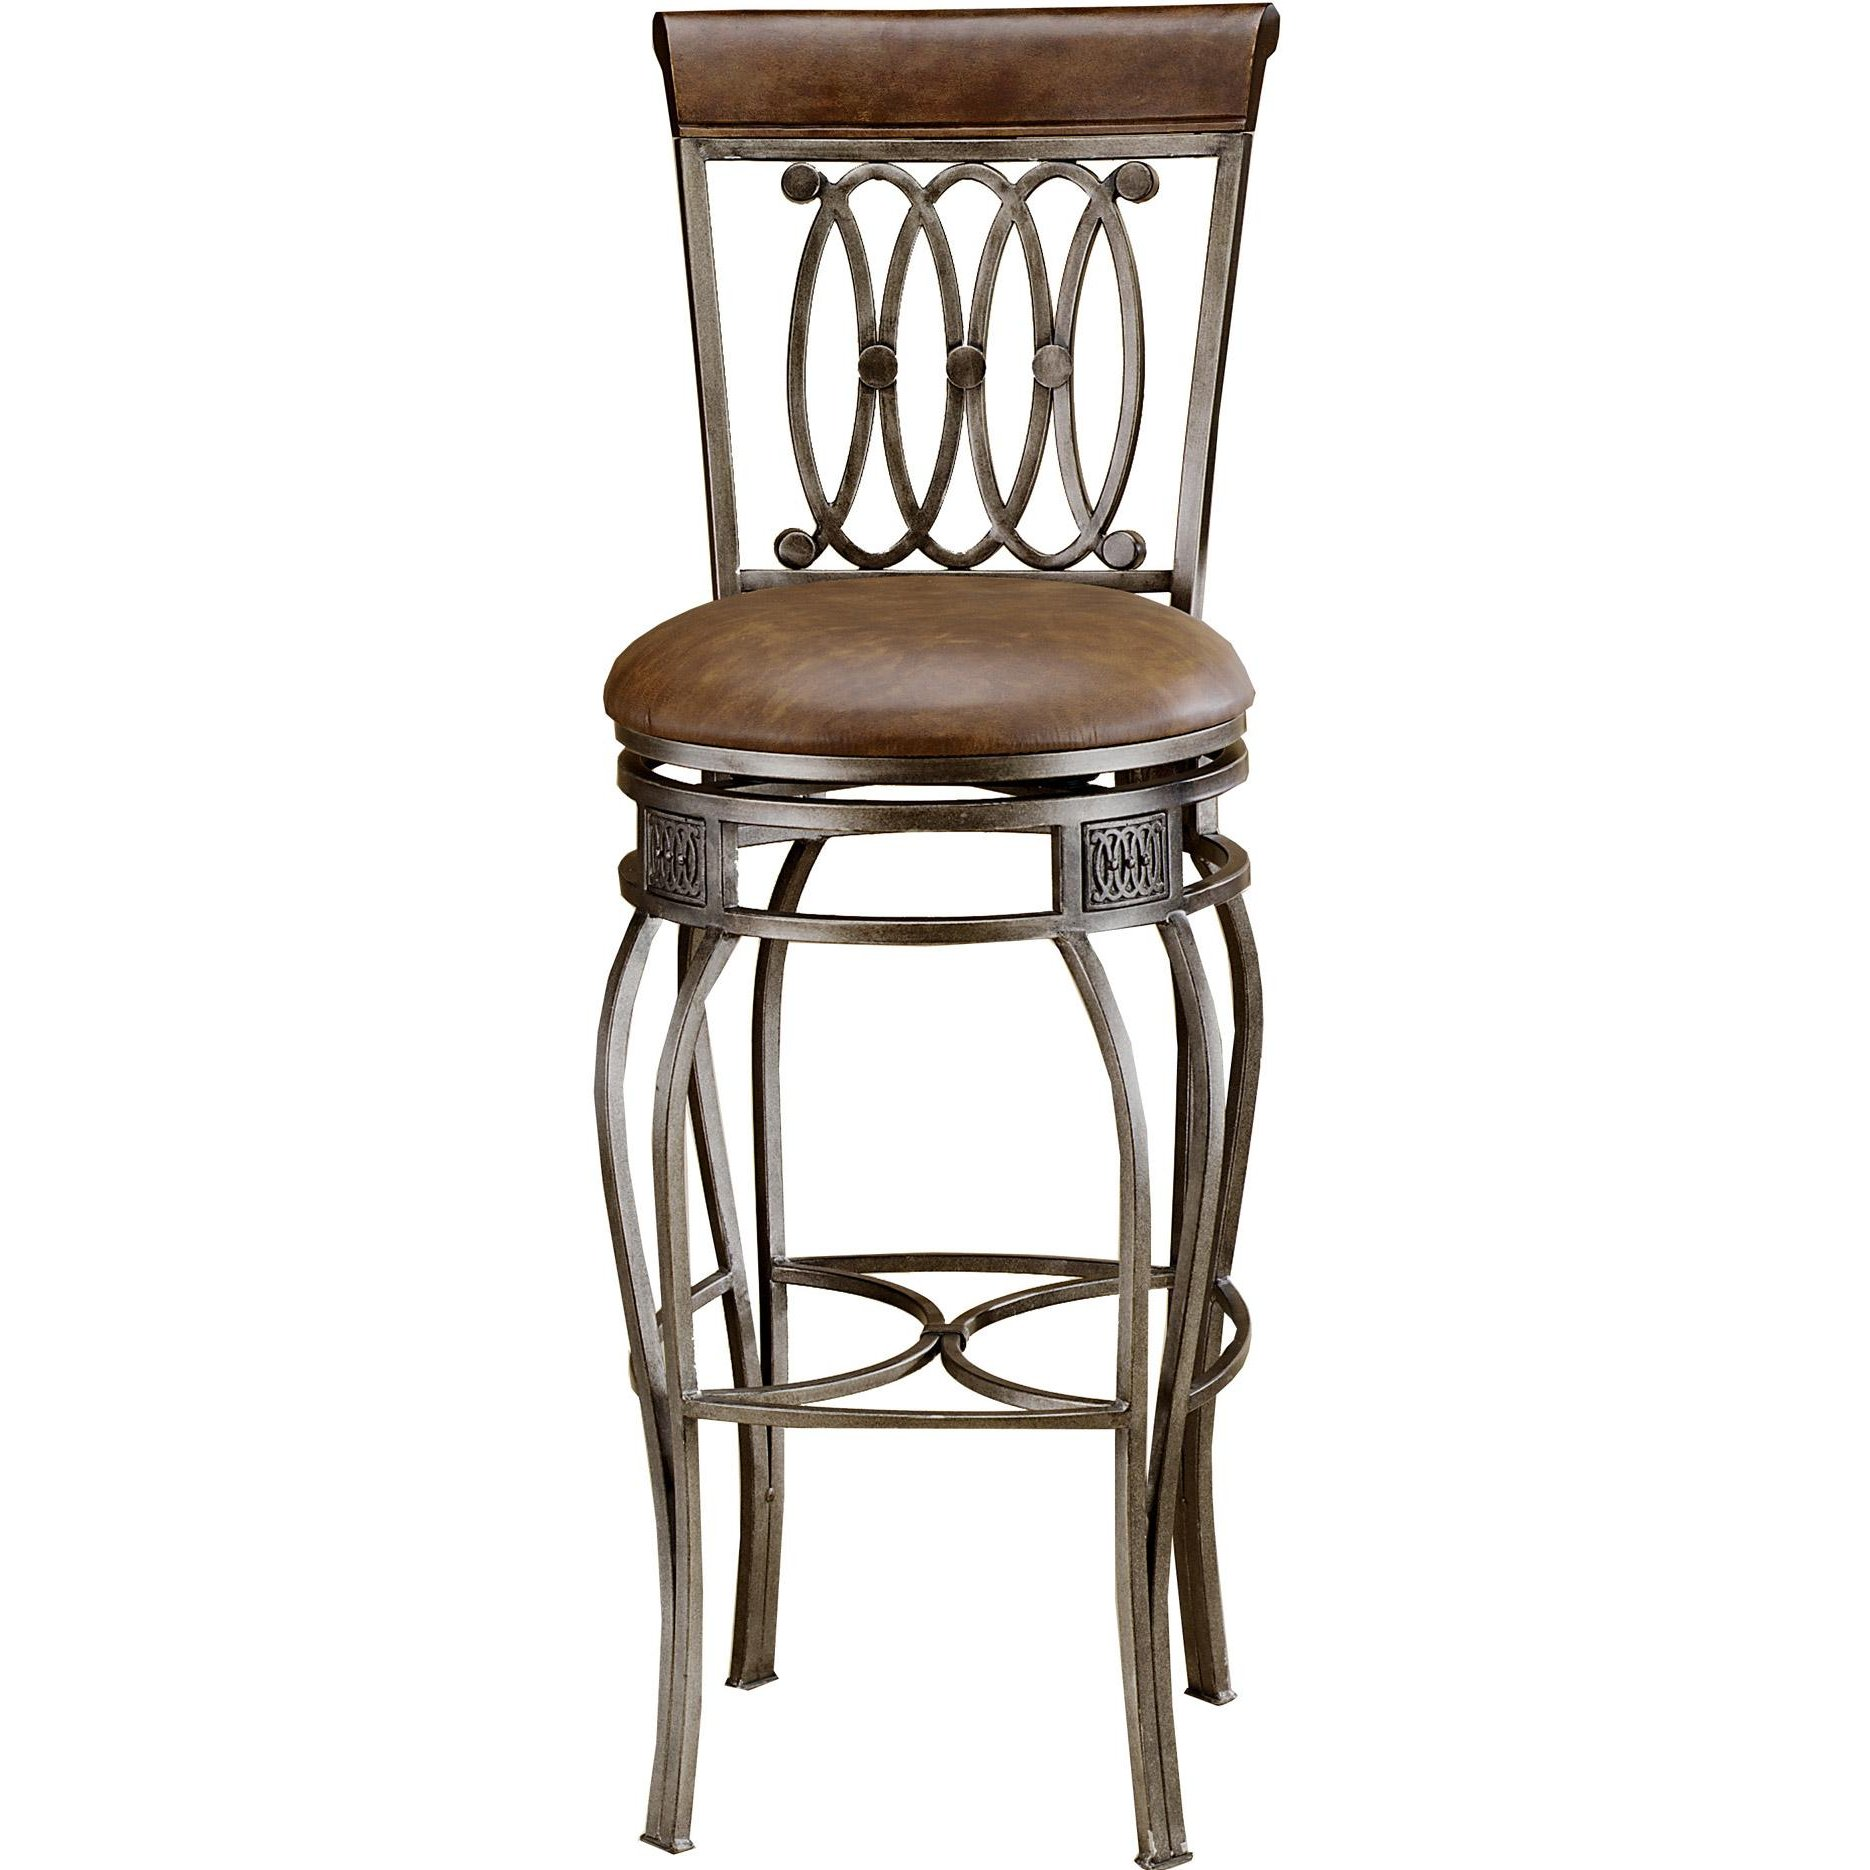 Montello Swivel Bar Stool Rcwilley Image1 800 Jpg